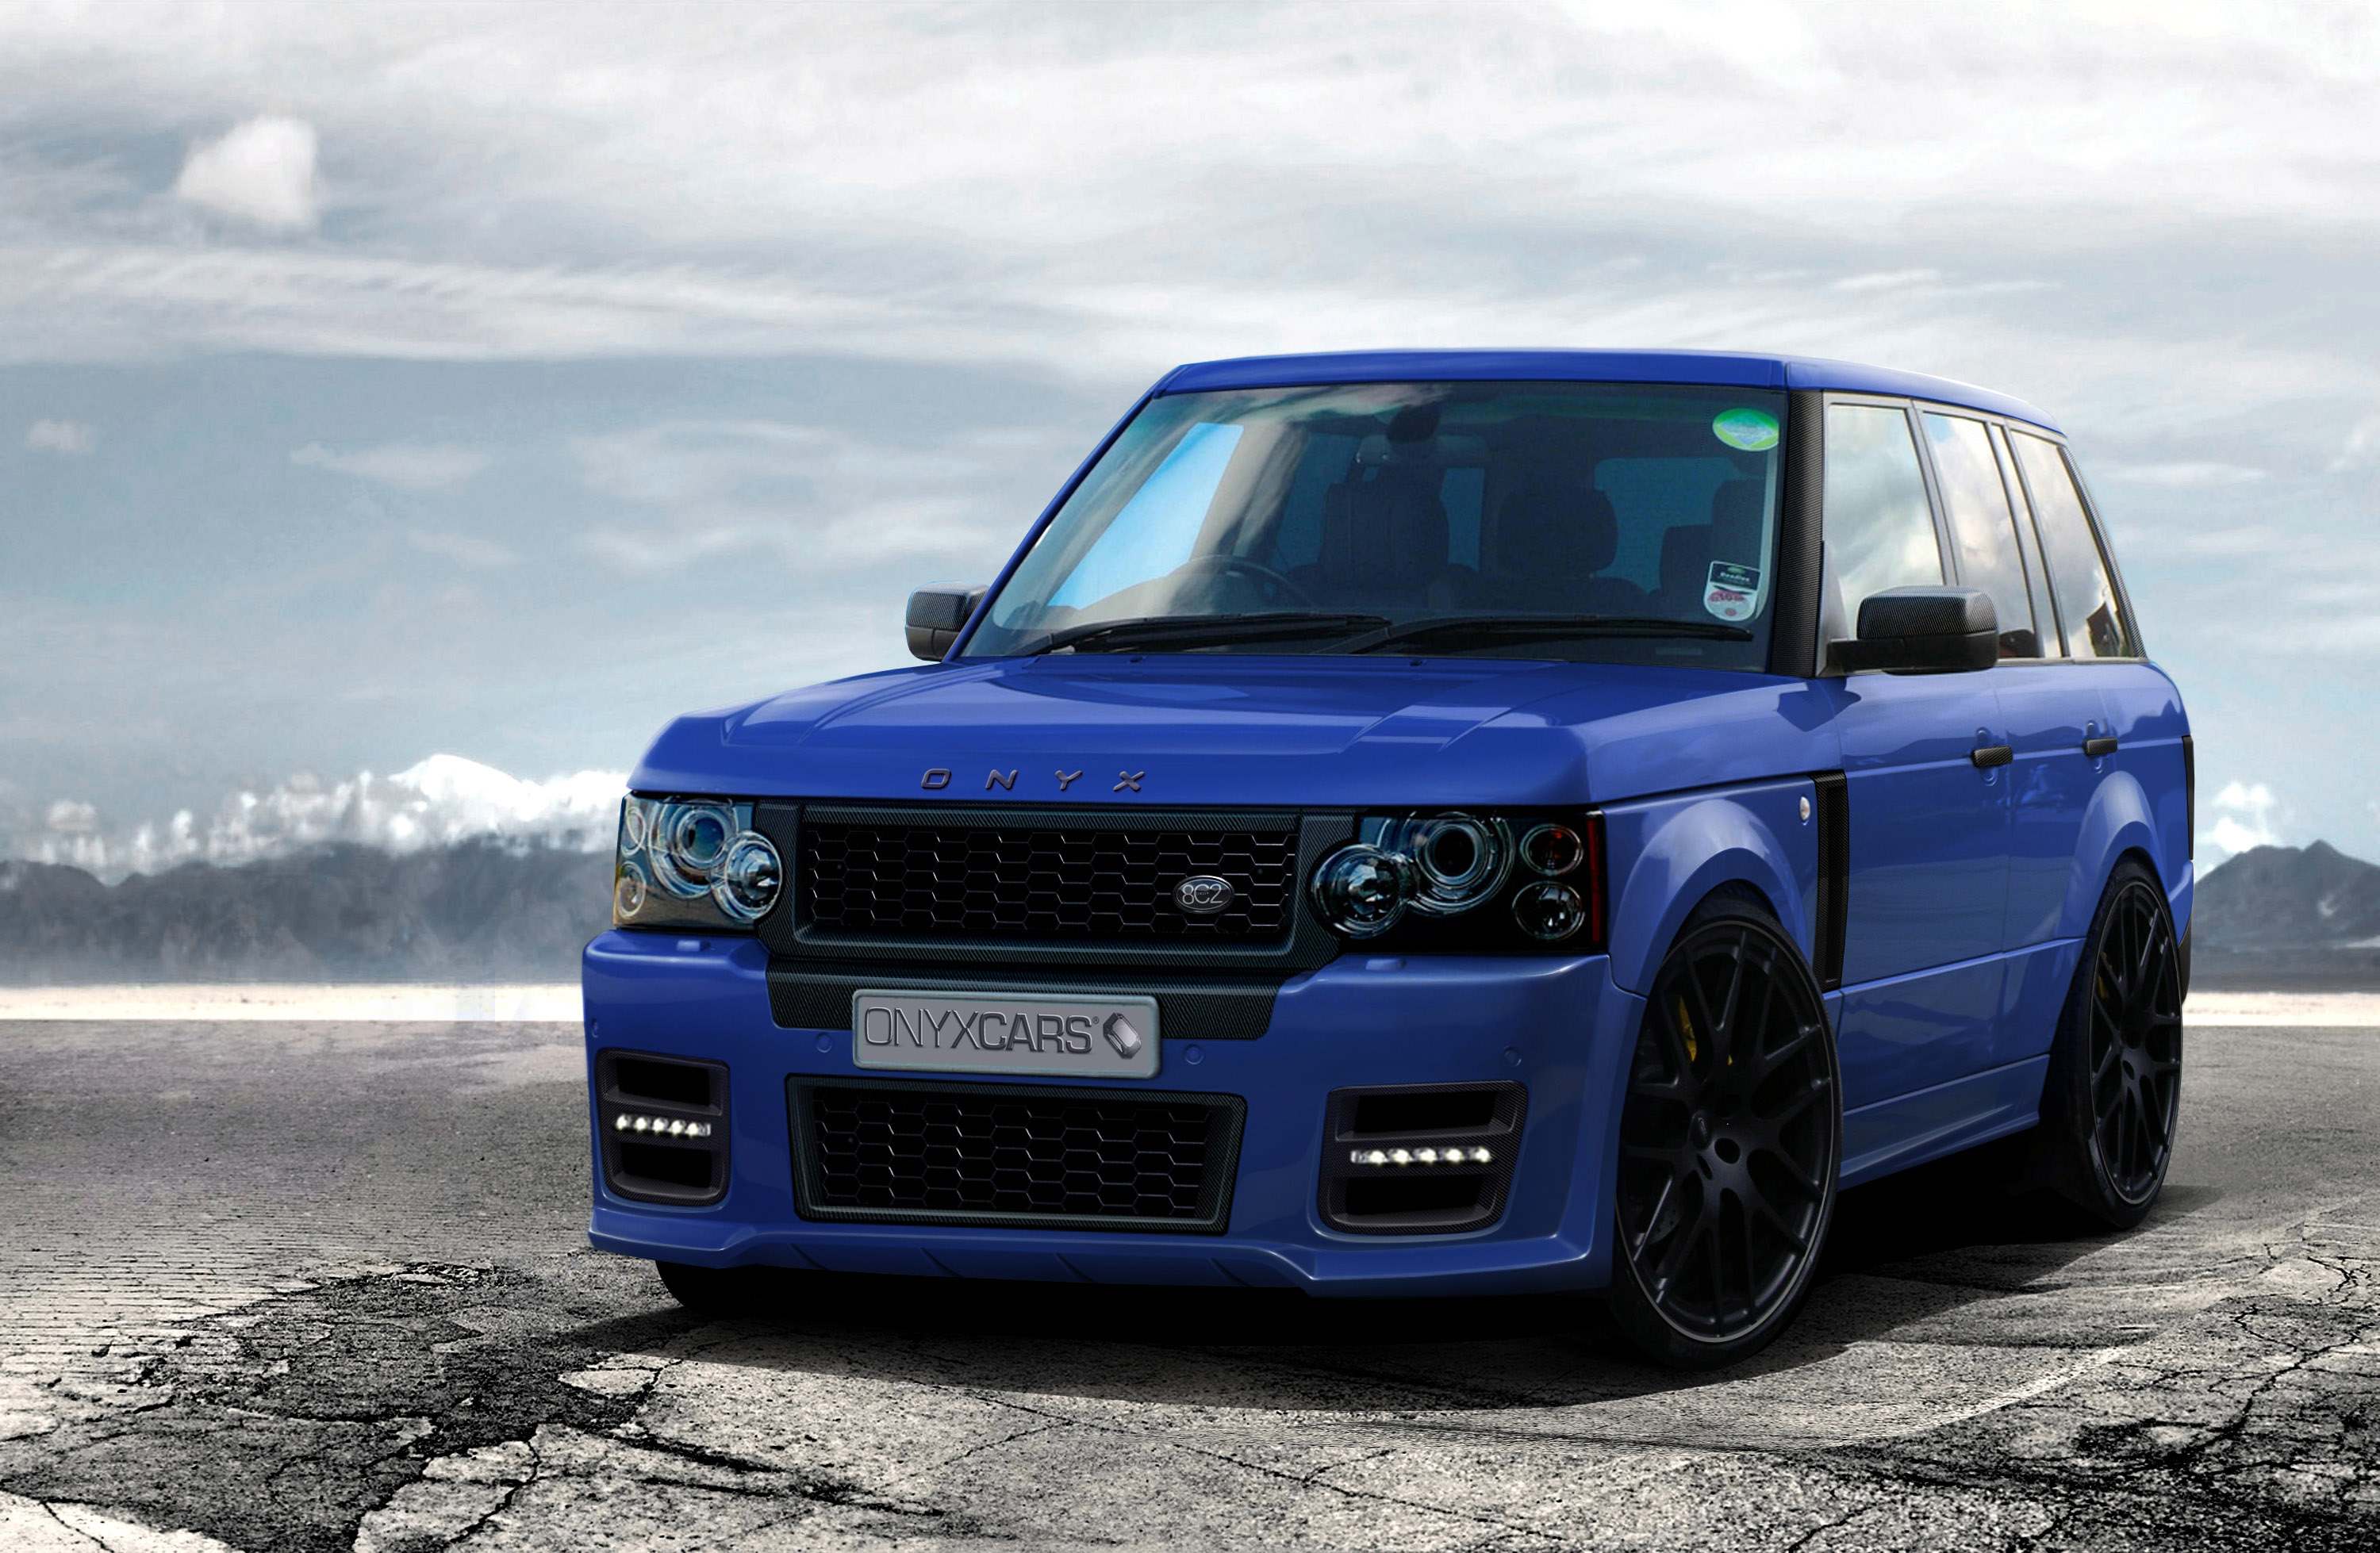 Latest Range Rover Sport Car >> ONYX Cars Platinum V enhances the luxurious Range Rover Vogue